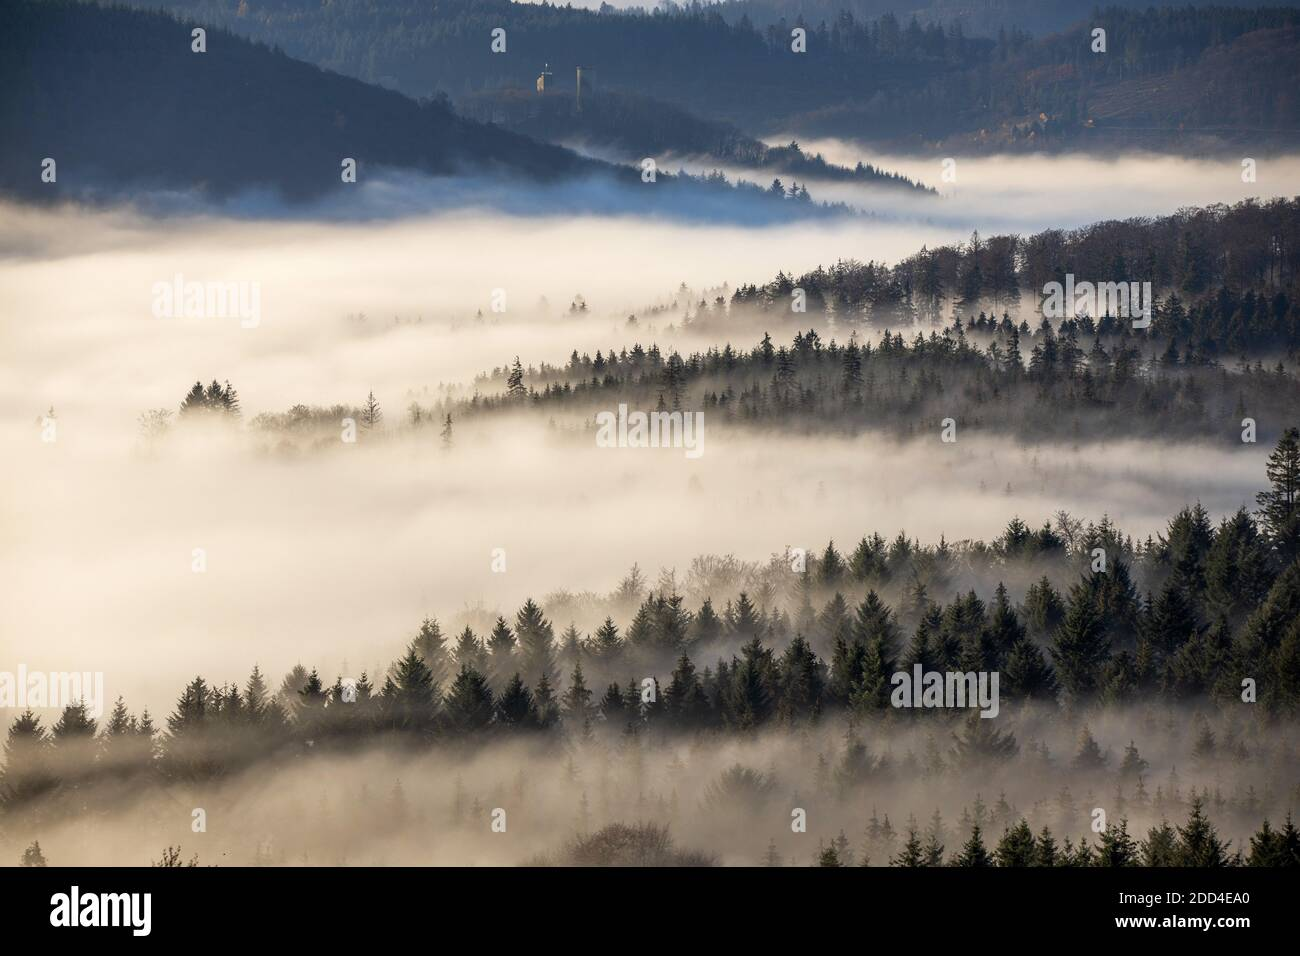 Schwithten, Deutschland. 24th Nov, 2020. 11/24/2020, Schwithten (Hessen): The high elevations of the Taunus with the Grosse Feldberg protrude from a sea of fog in the morning after sunrise. (View to Reifenberg Castle) | usage worldwide Credit: dpa/Alamy Live News Stock Photo